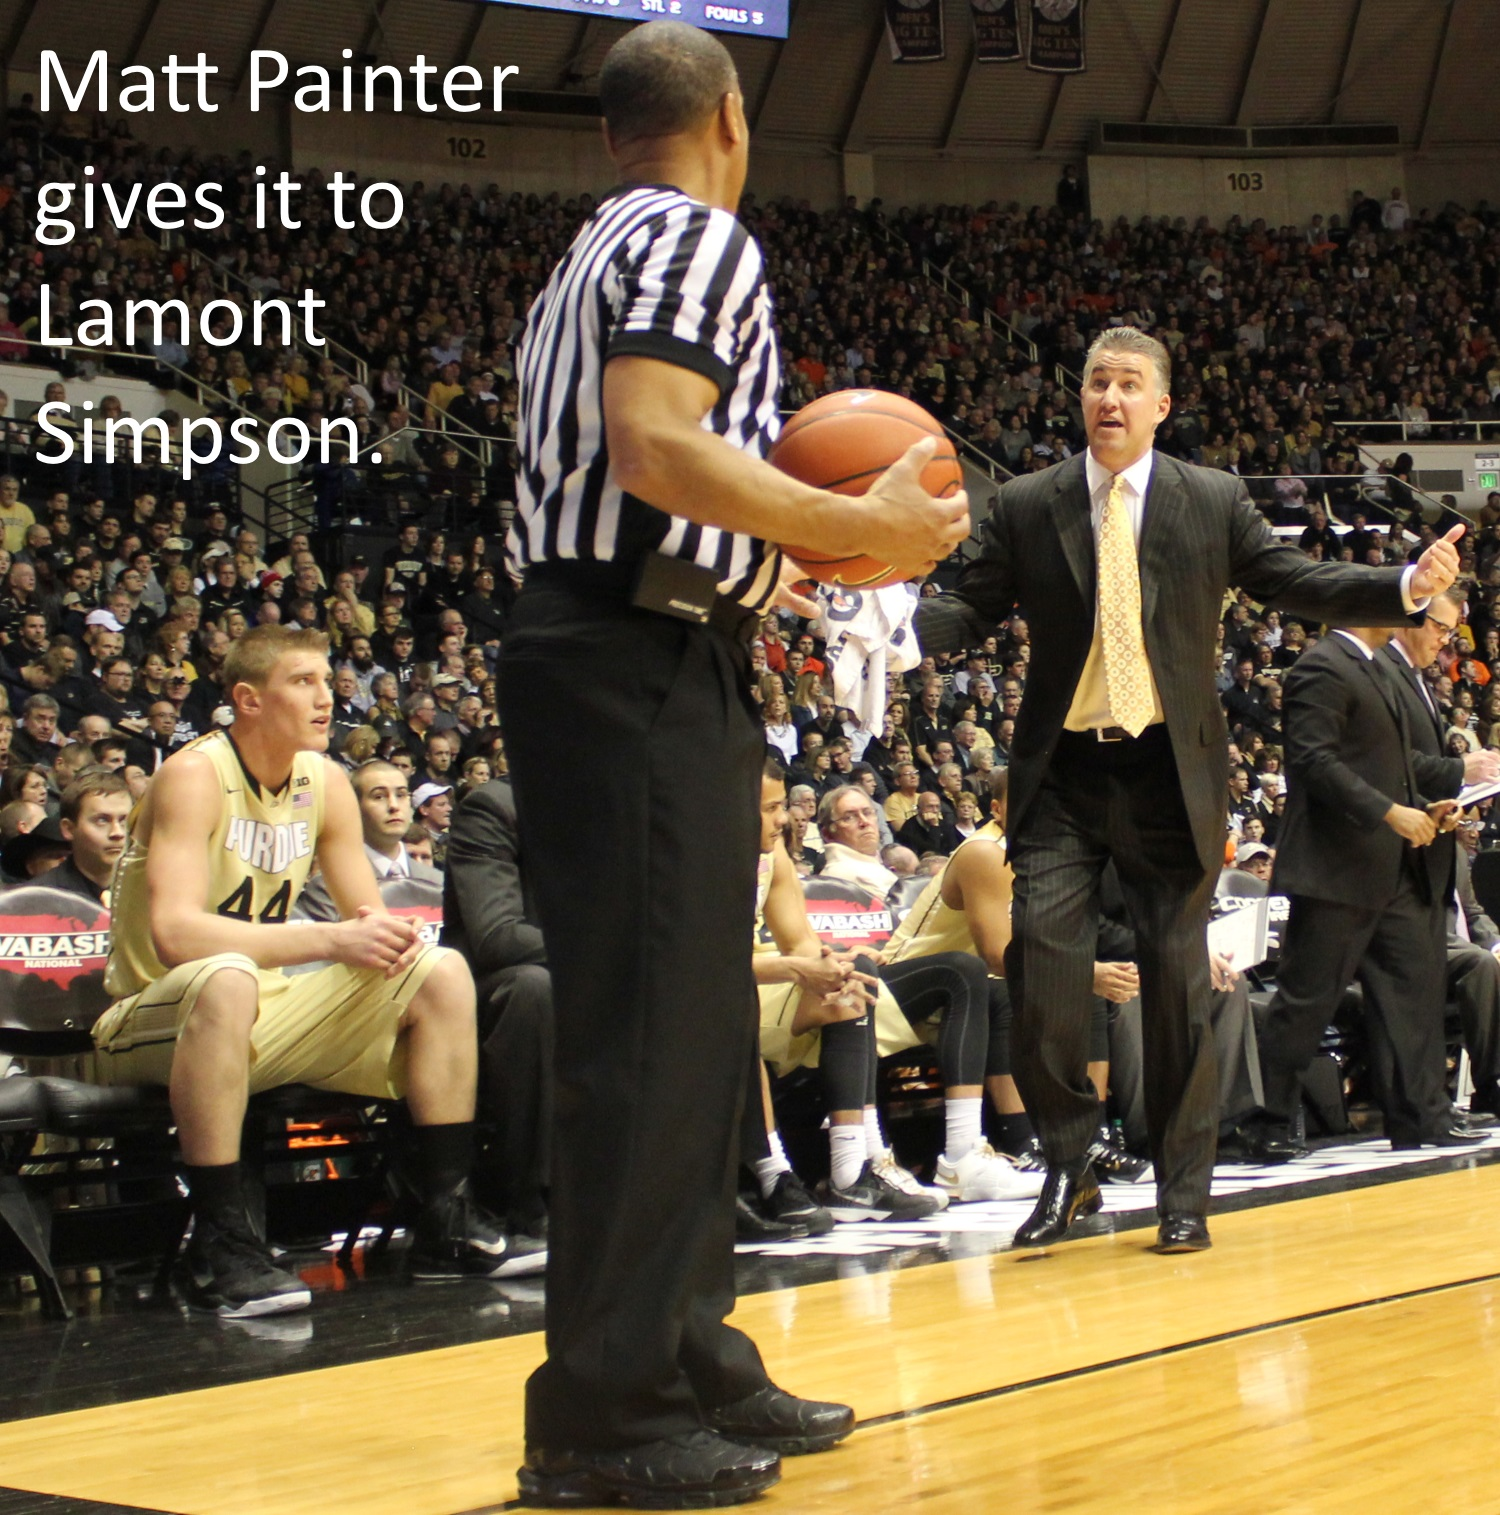 Matt Painter gives it to Lamont Simpson